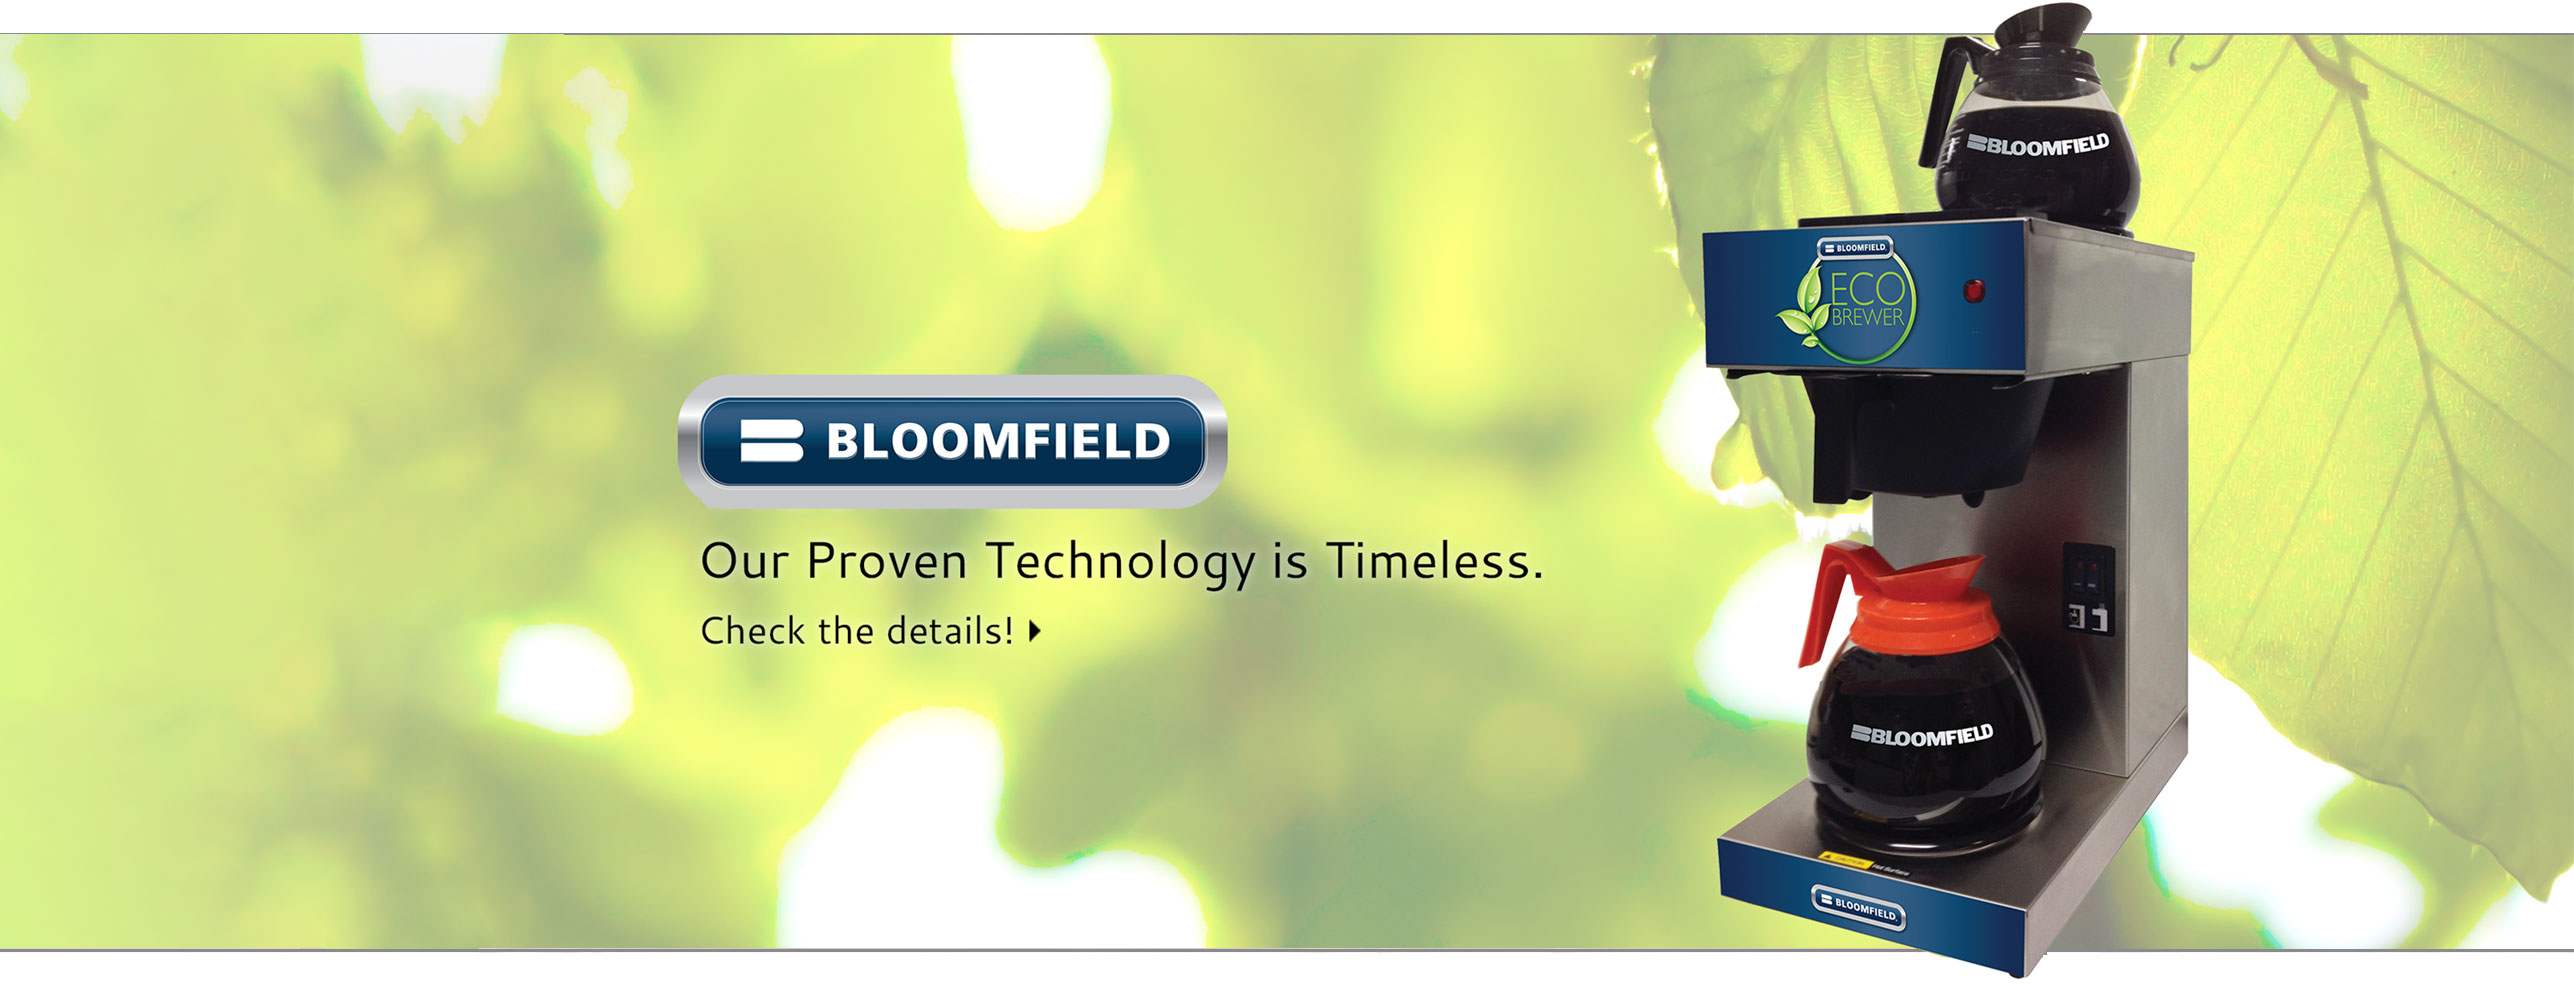 Bloomfield Our Proven Technology is Timeless